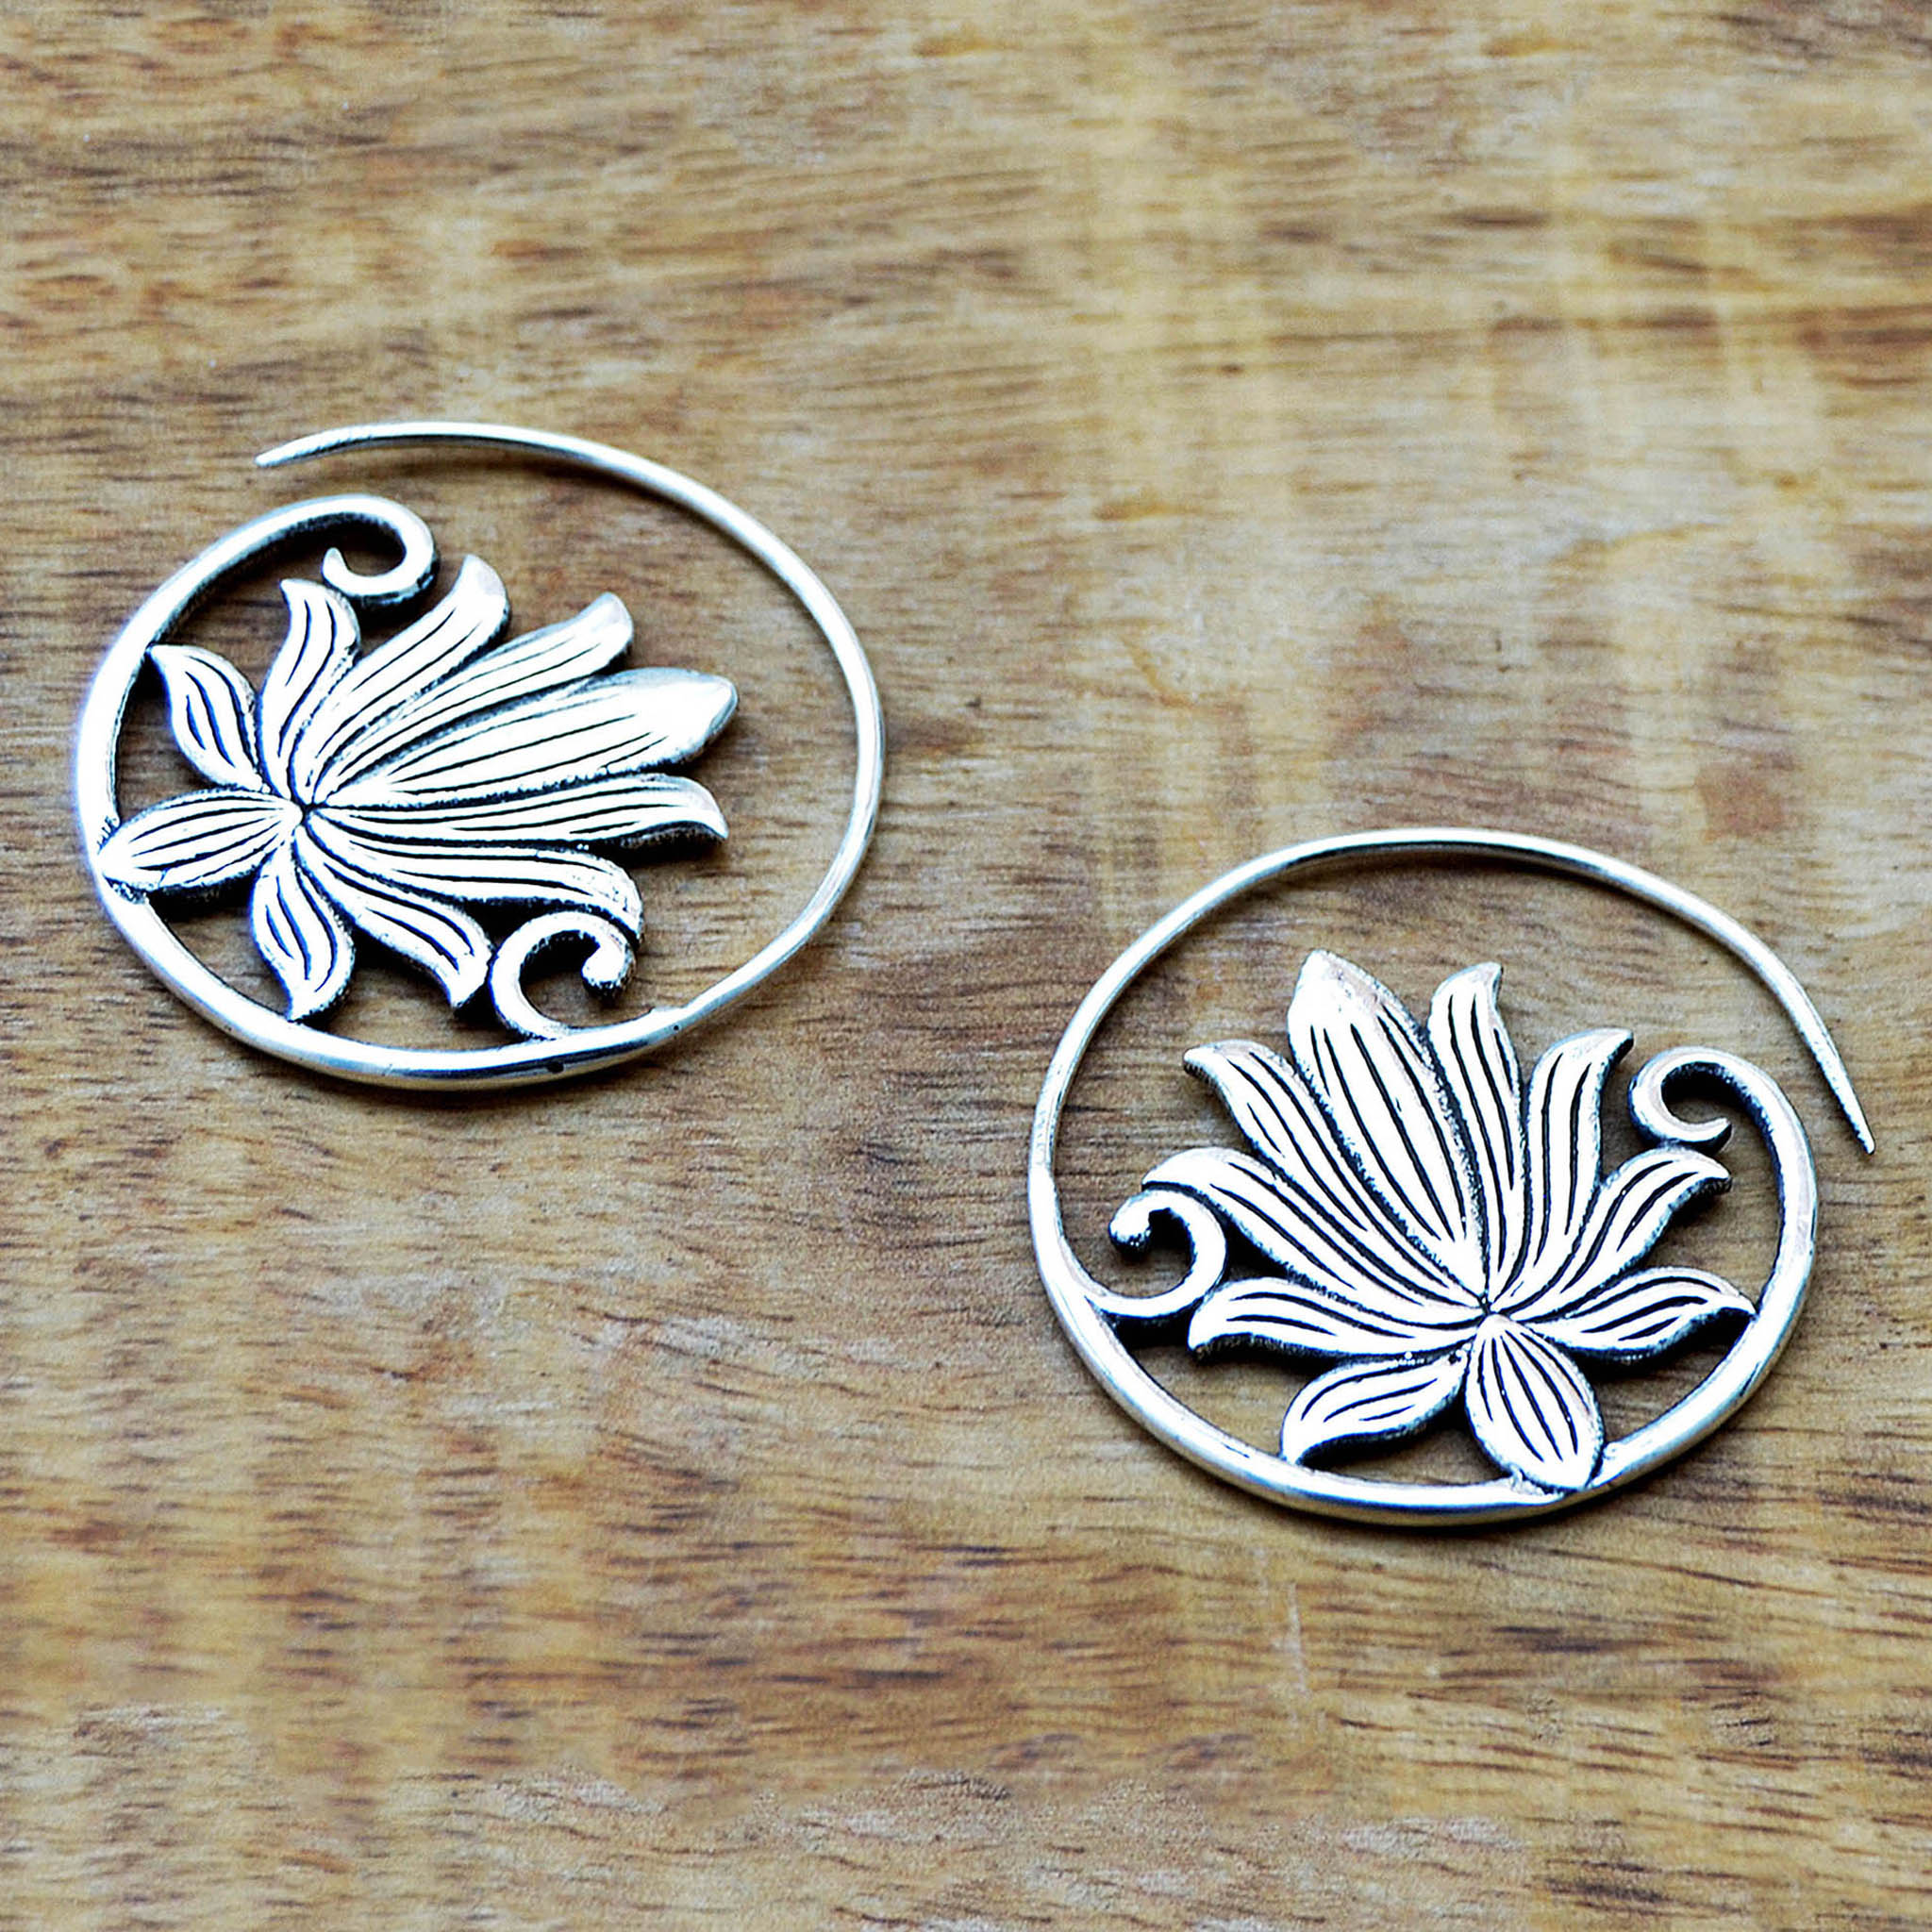 Spiral lotus earrings